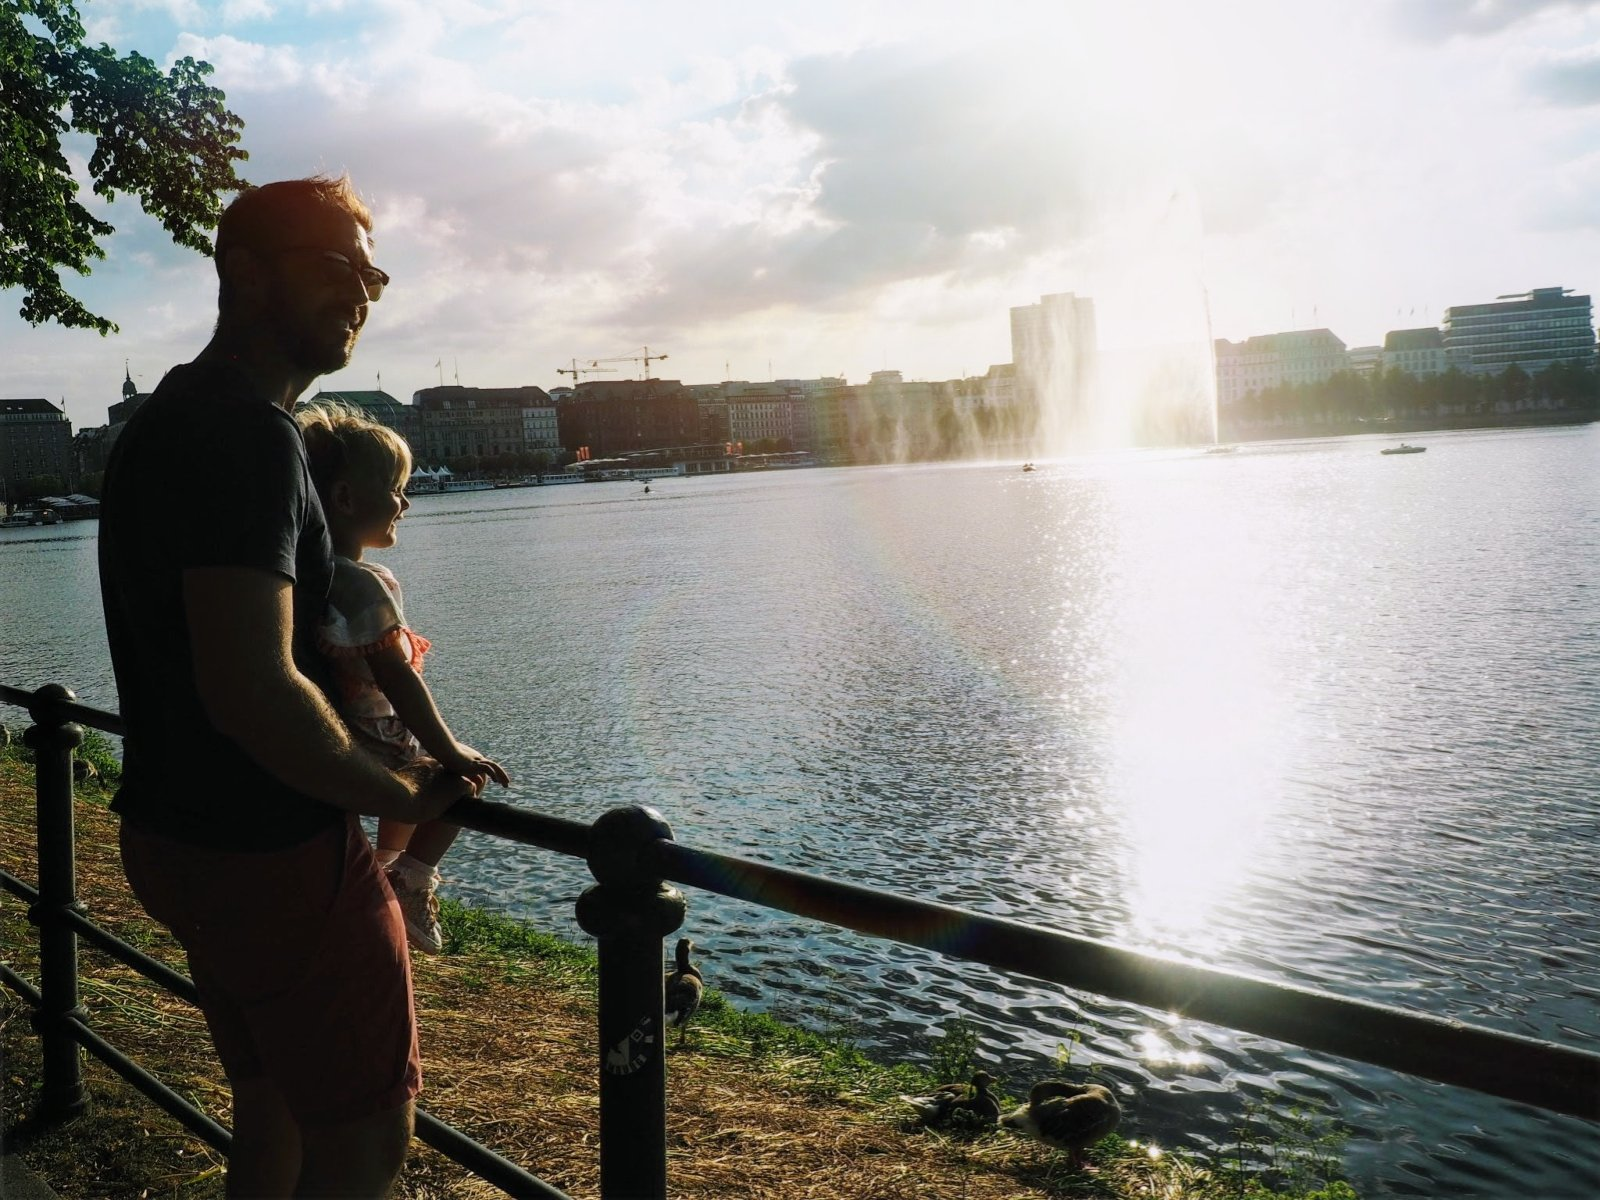 Daddy and Daughter at Binnenalster Lake, Hamburg with a Toddler | Ettie and Me